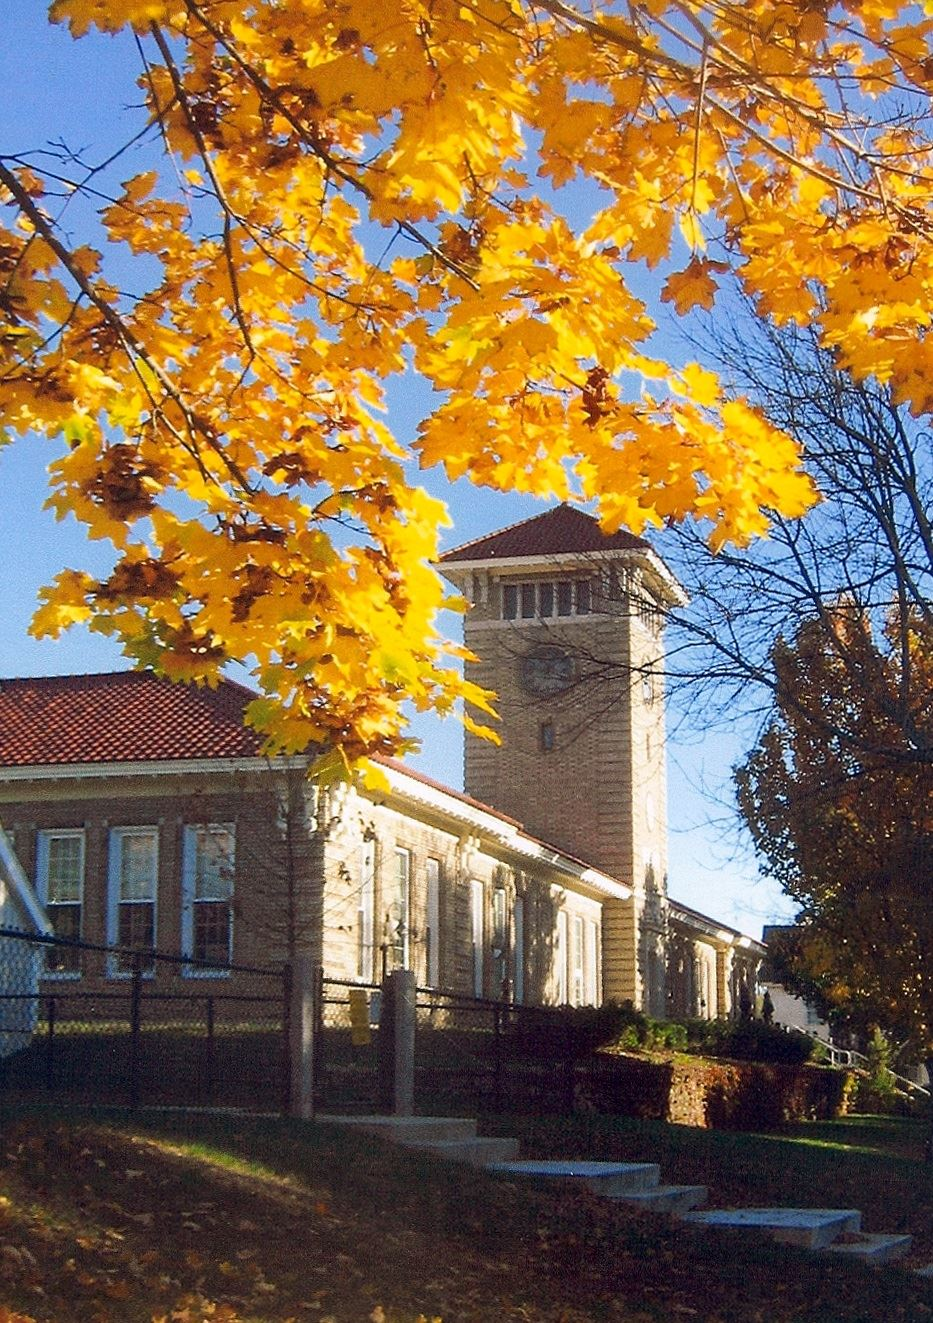 Photograph of the Harvey Wheeler Community Center with Golden Fall Color